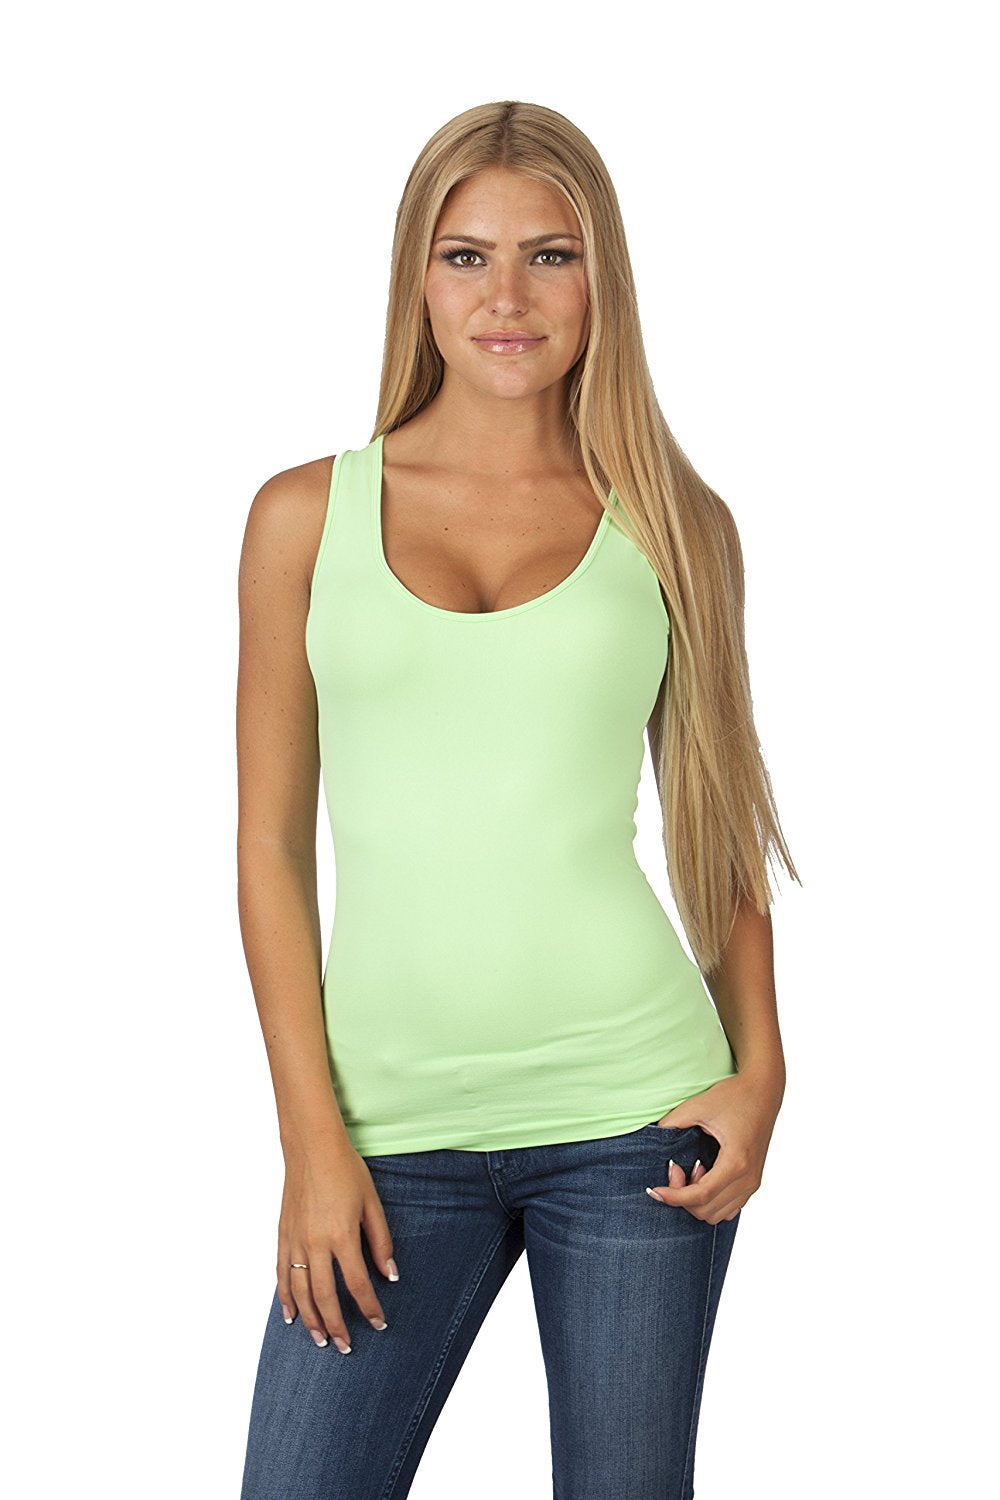 Hollywood Star Fashion Women's Long Stretch Tank Top Round Neck Full Back